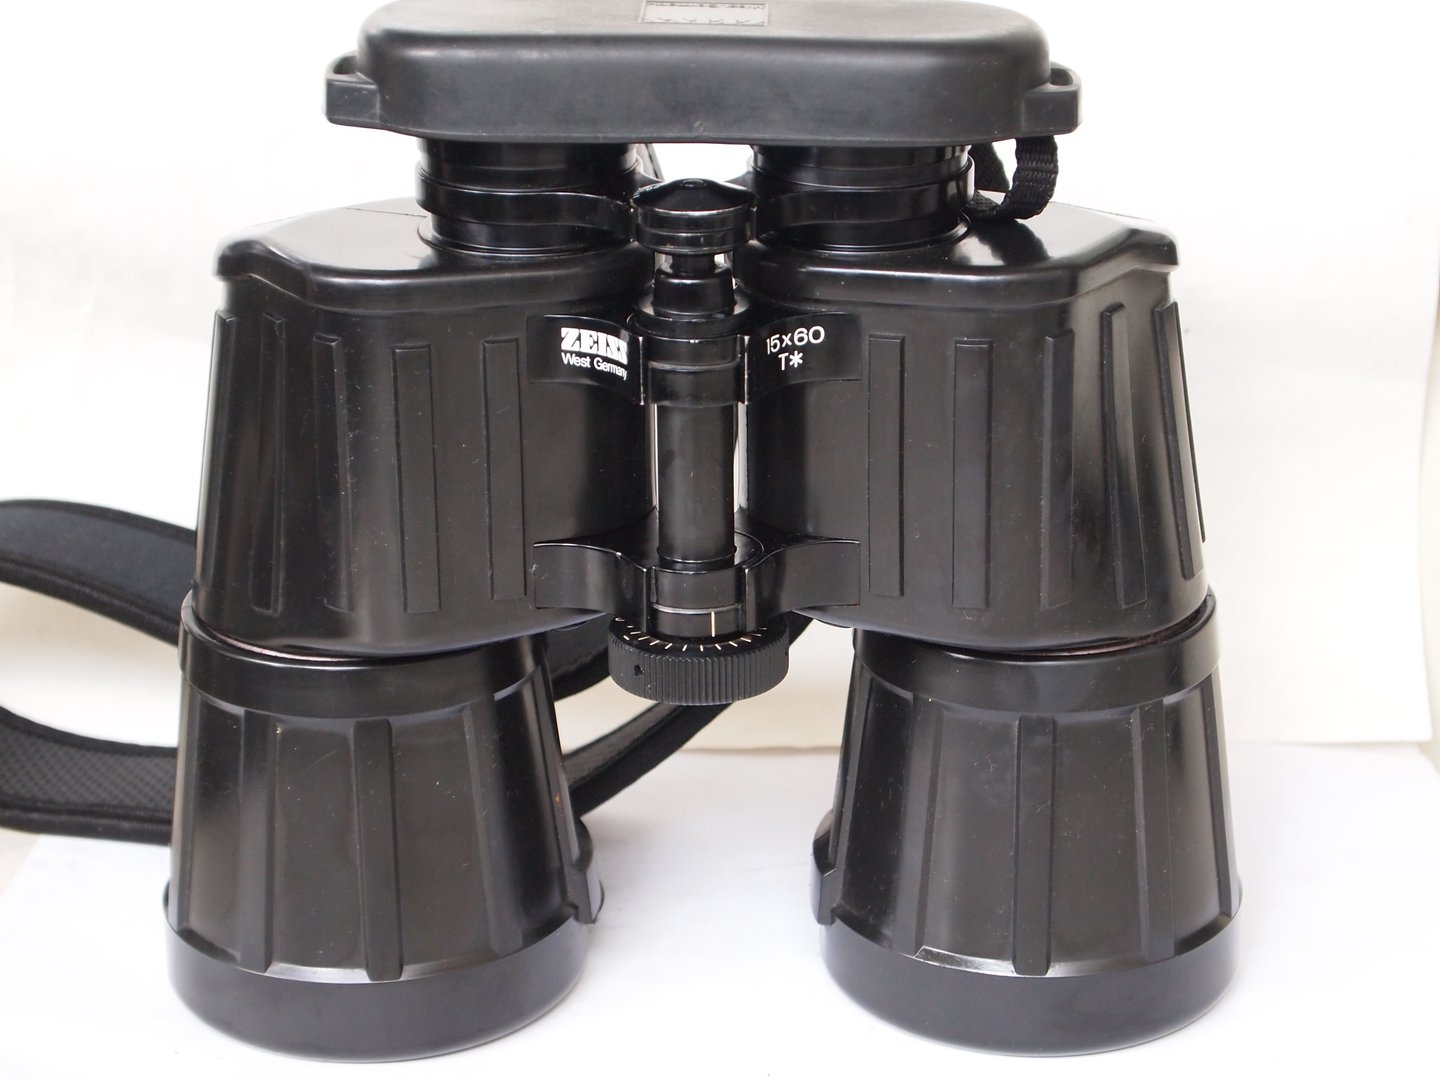 Carl zeiss 15x60 t* fernglas army store24